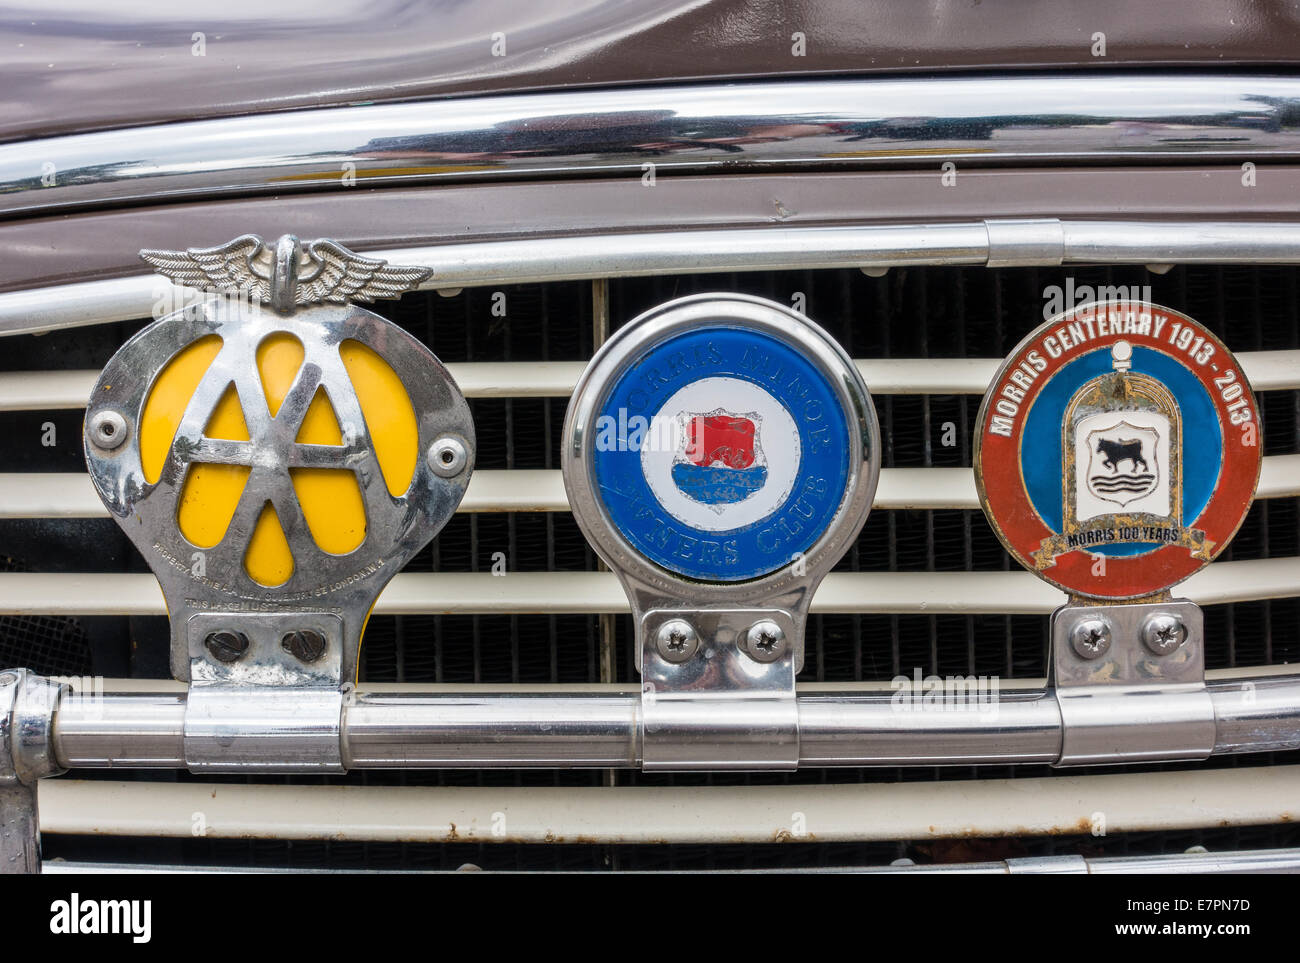 Badge bar on a vintage car with Automobile Association Morris Owners Club and Morris Centenary Badge - Stock Image